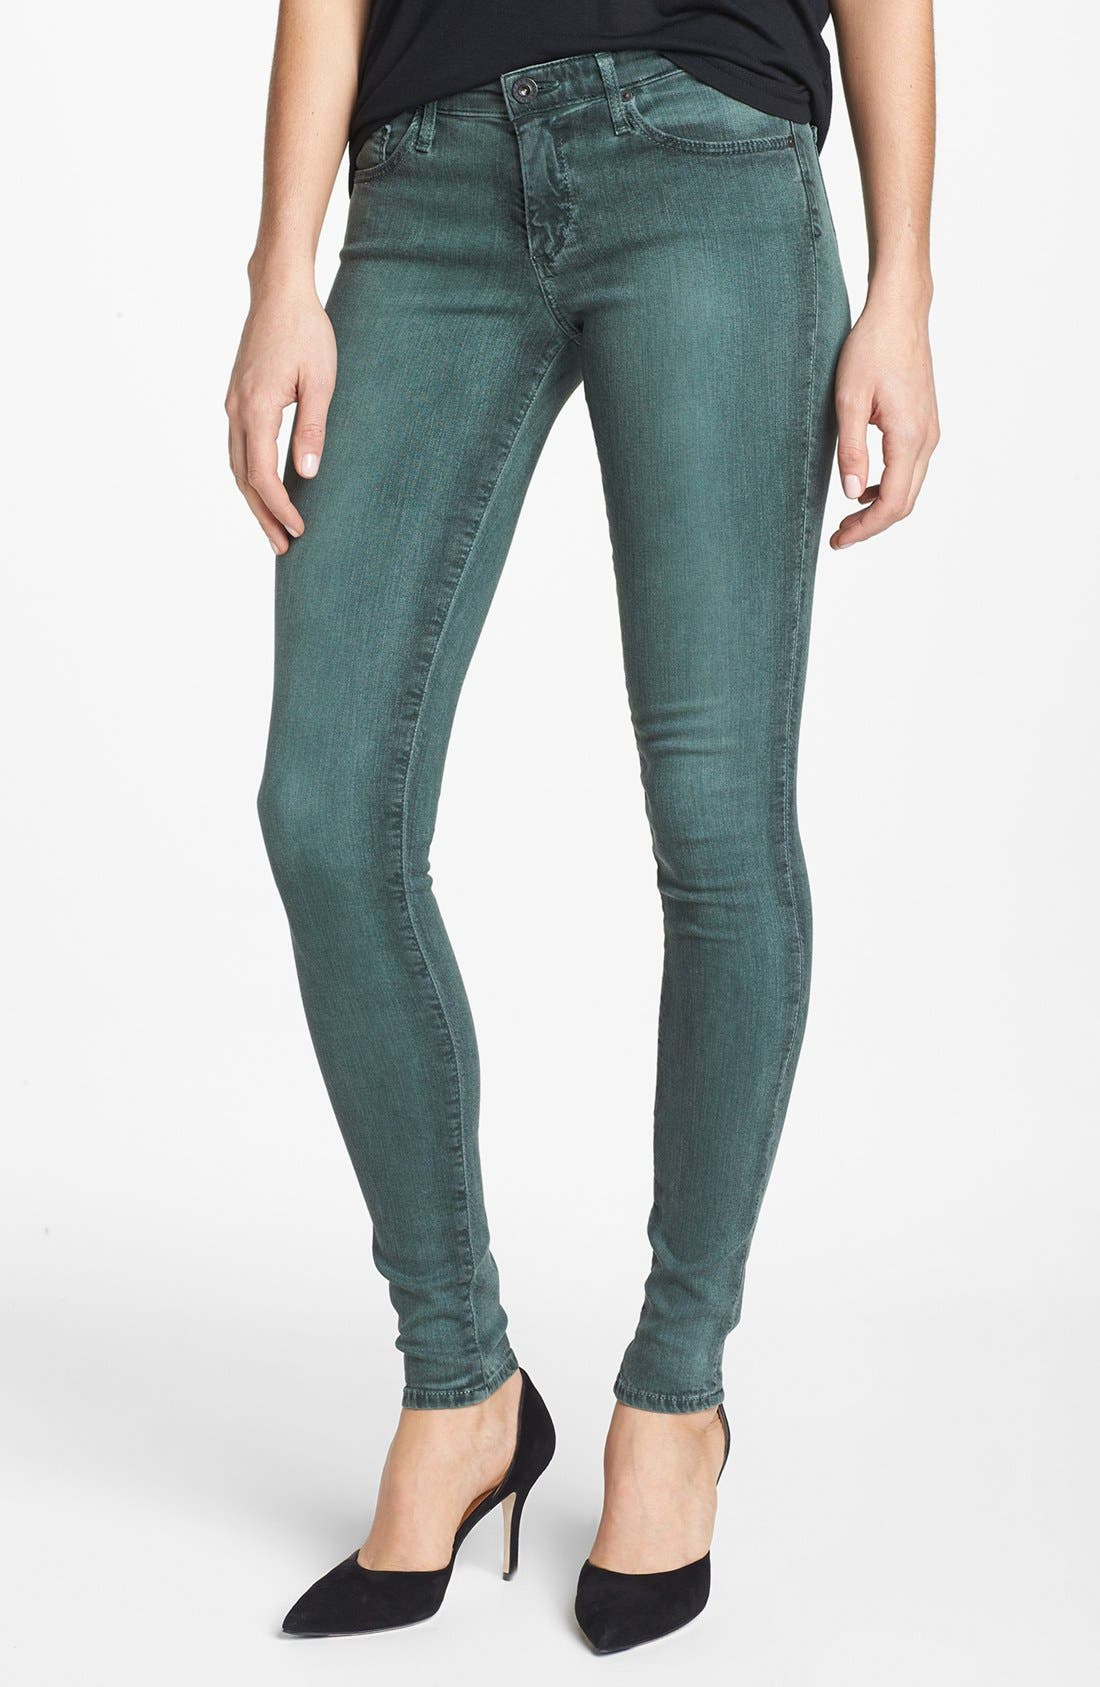 Alternate Image 1 Selected - AG 'The Absolute Legging' Skinny Jeans (Storm Winter Green)